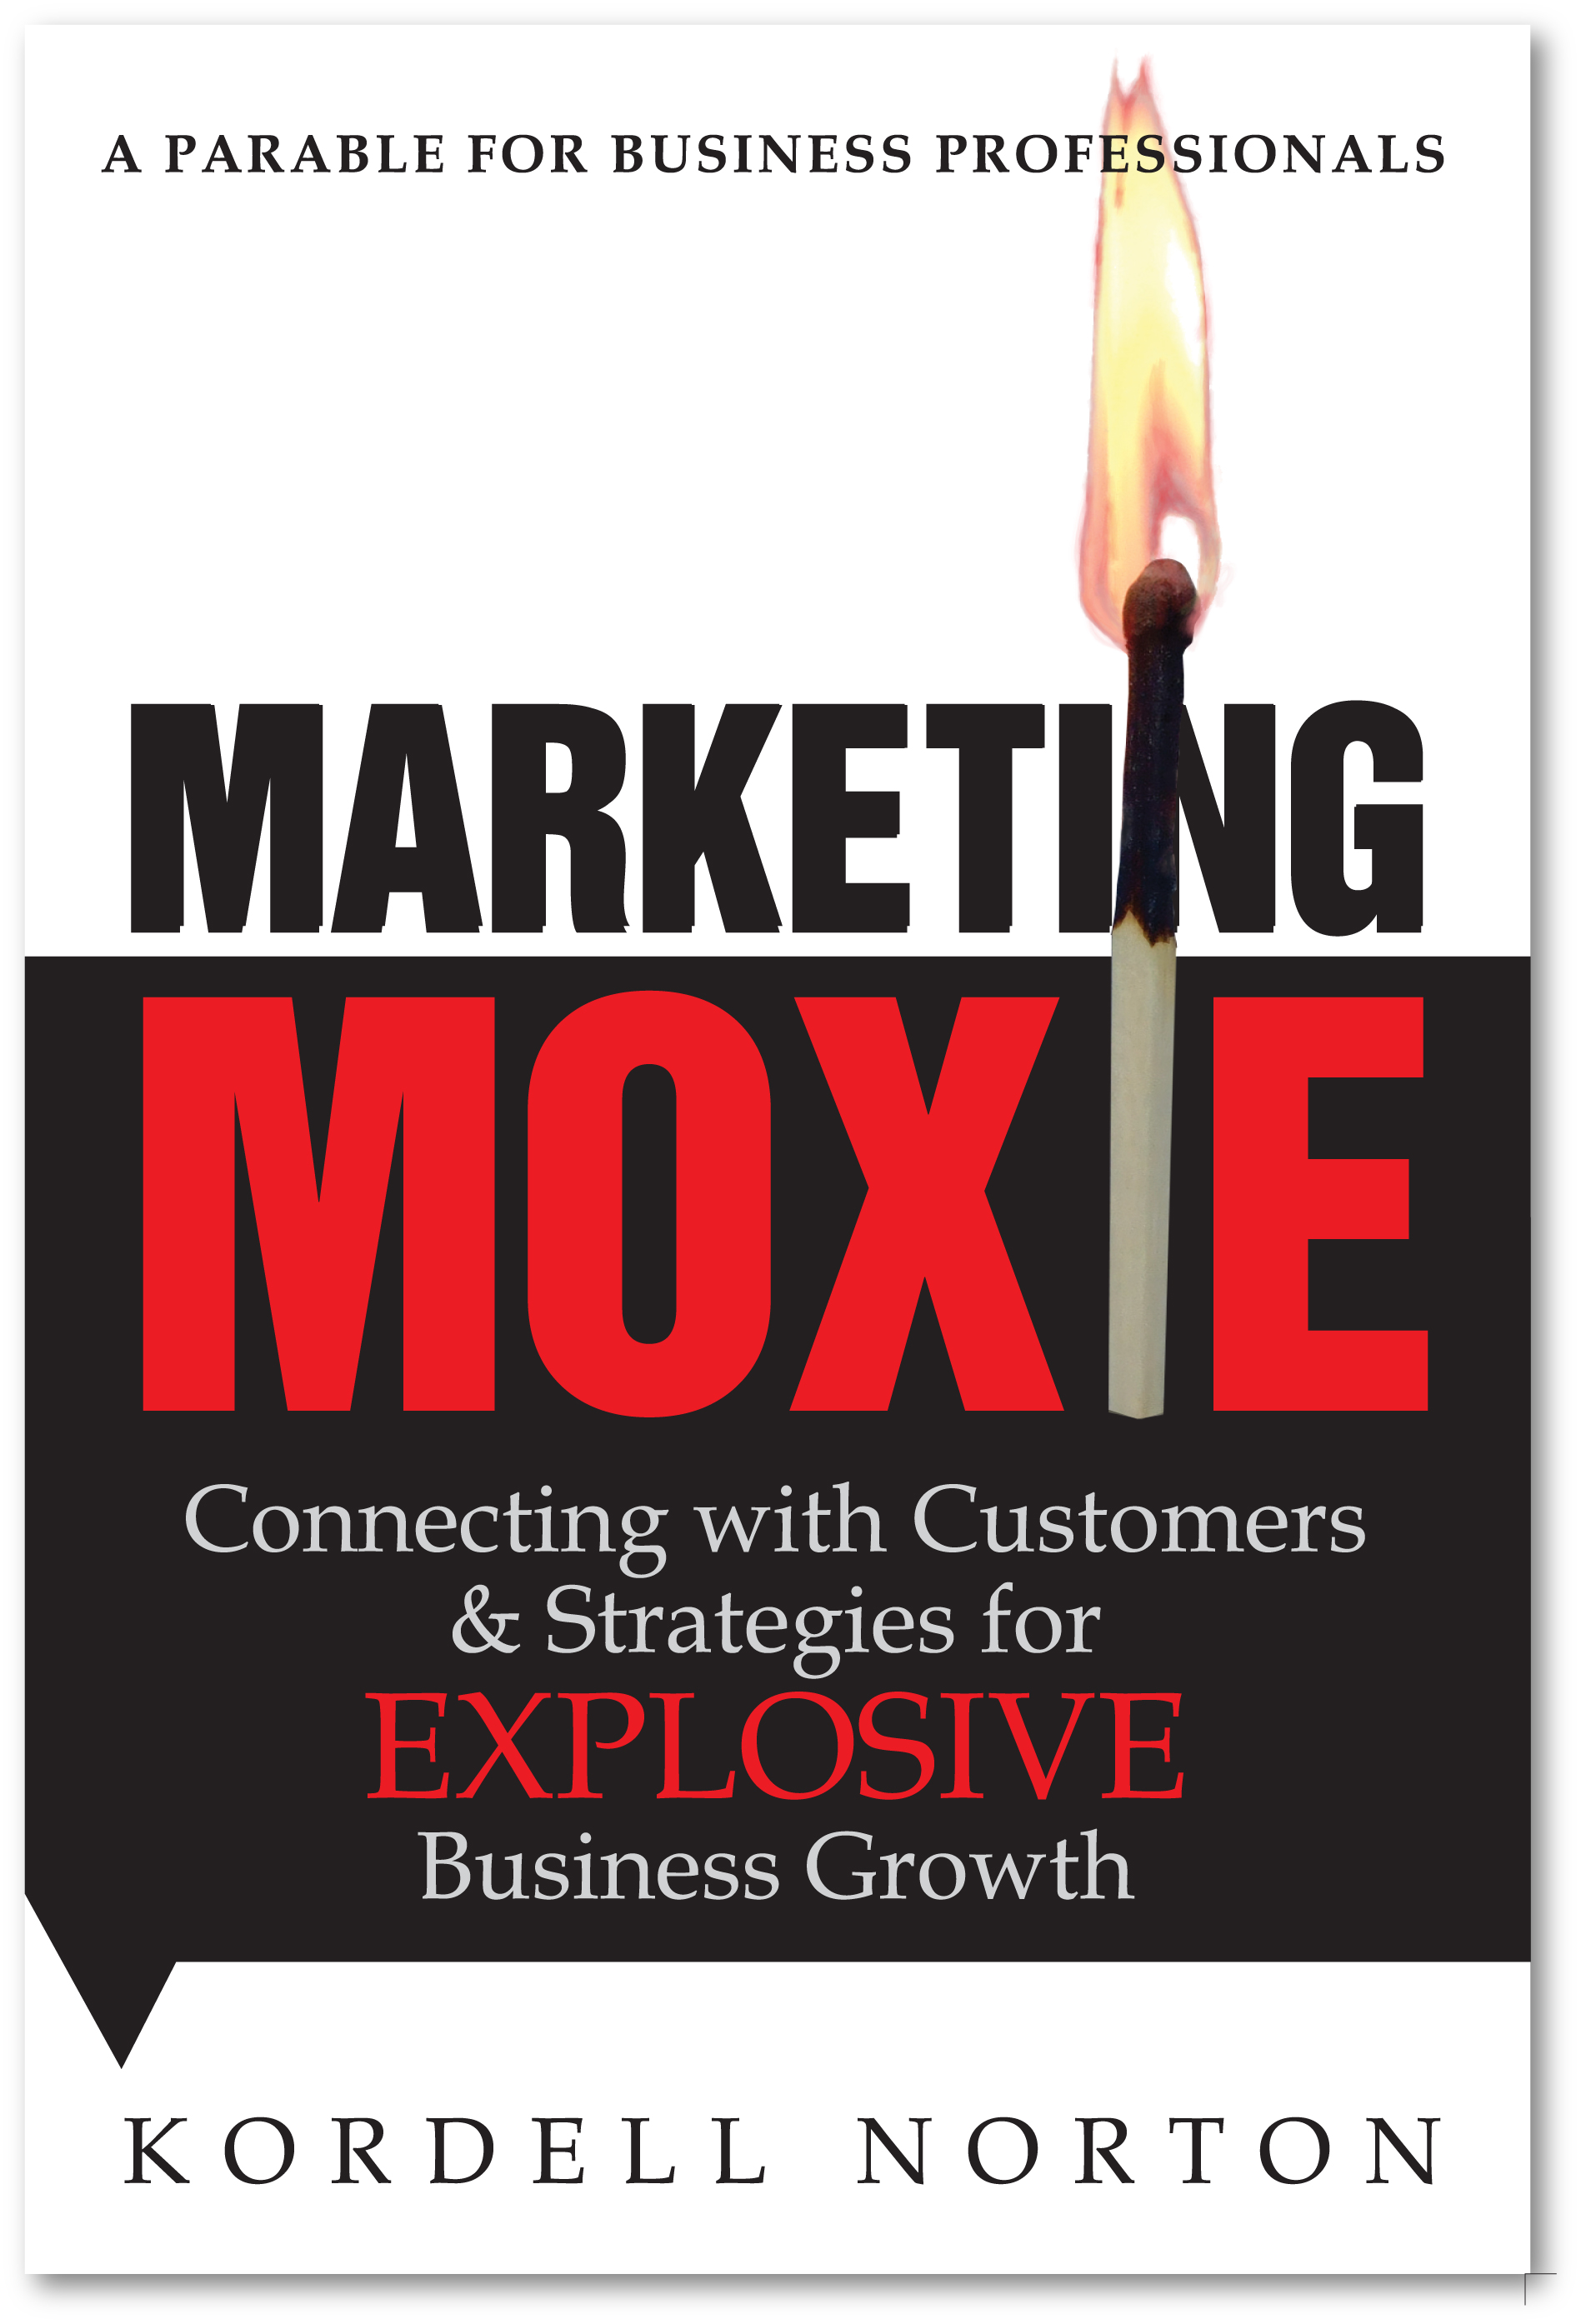 Marketing Moxie - Connecting with Customers & Strategies for Explosive Business Growth by Kordell Norton